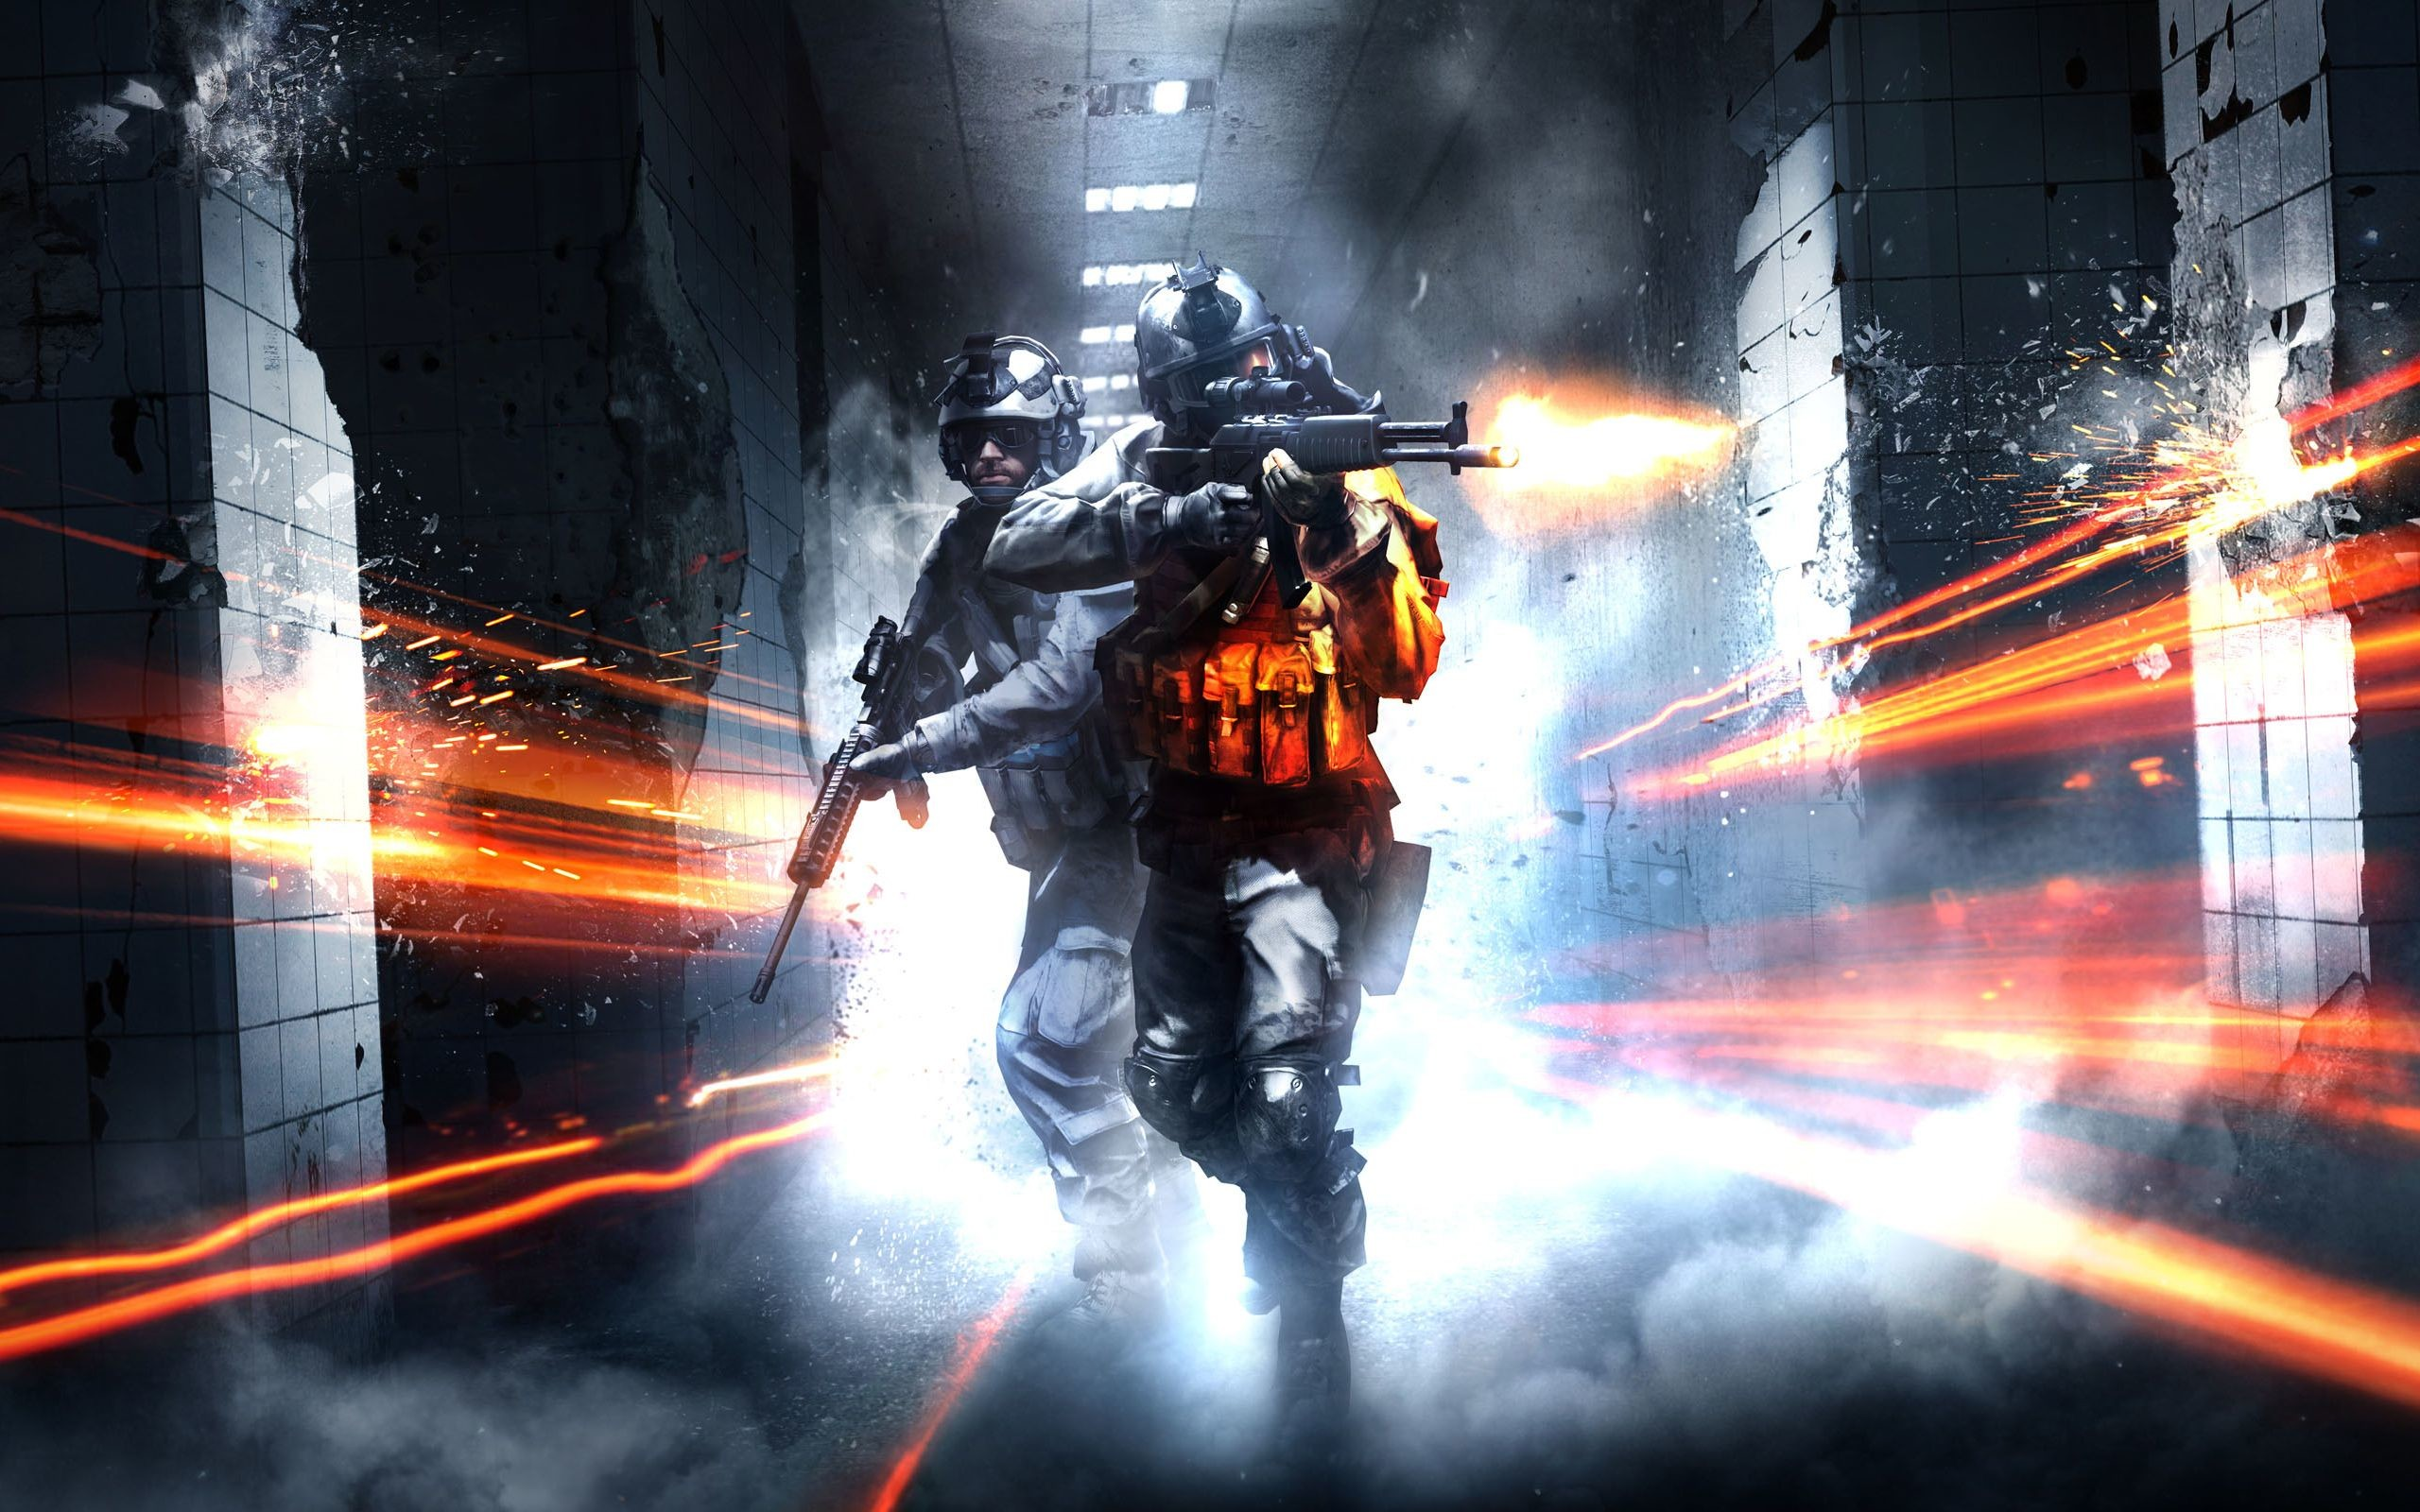 Res: 2560x1600, Other pictures of Battlefield 3: